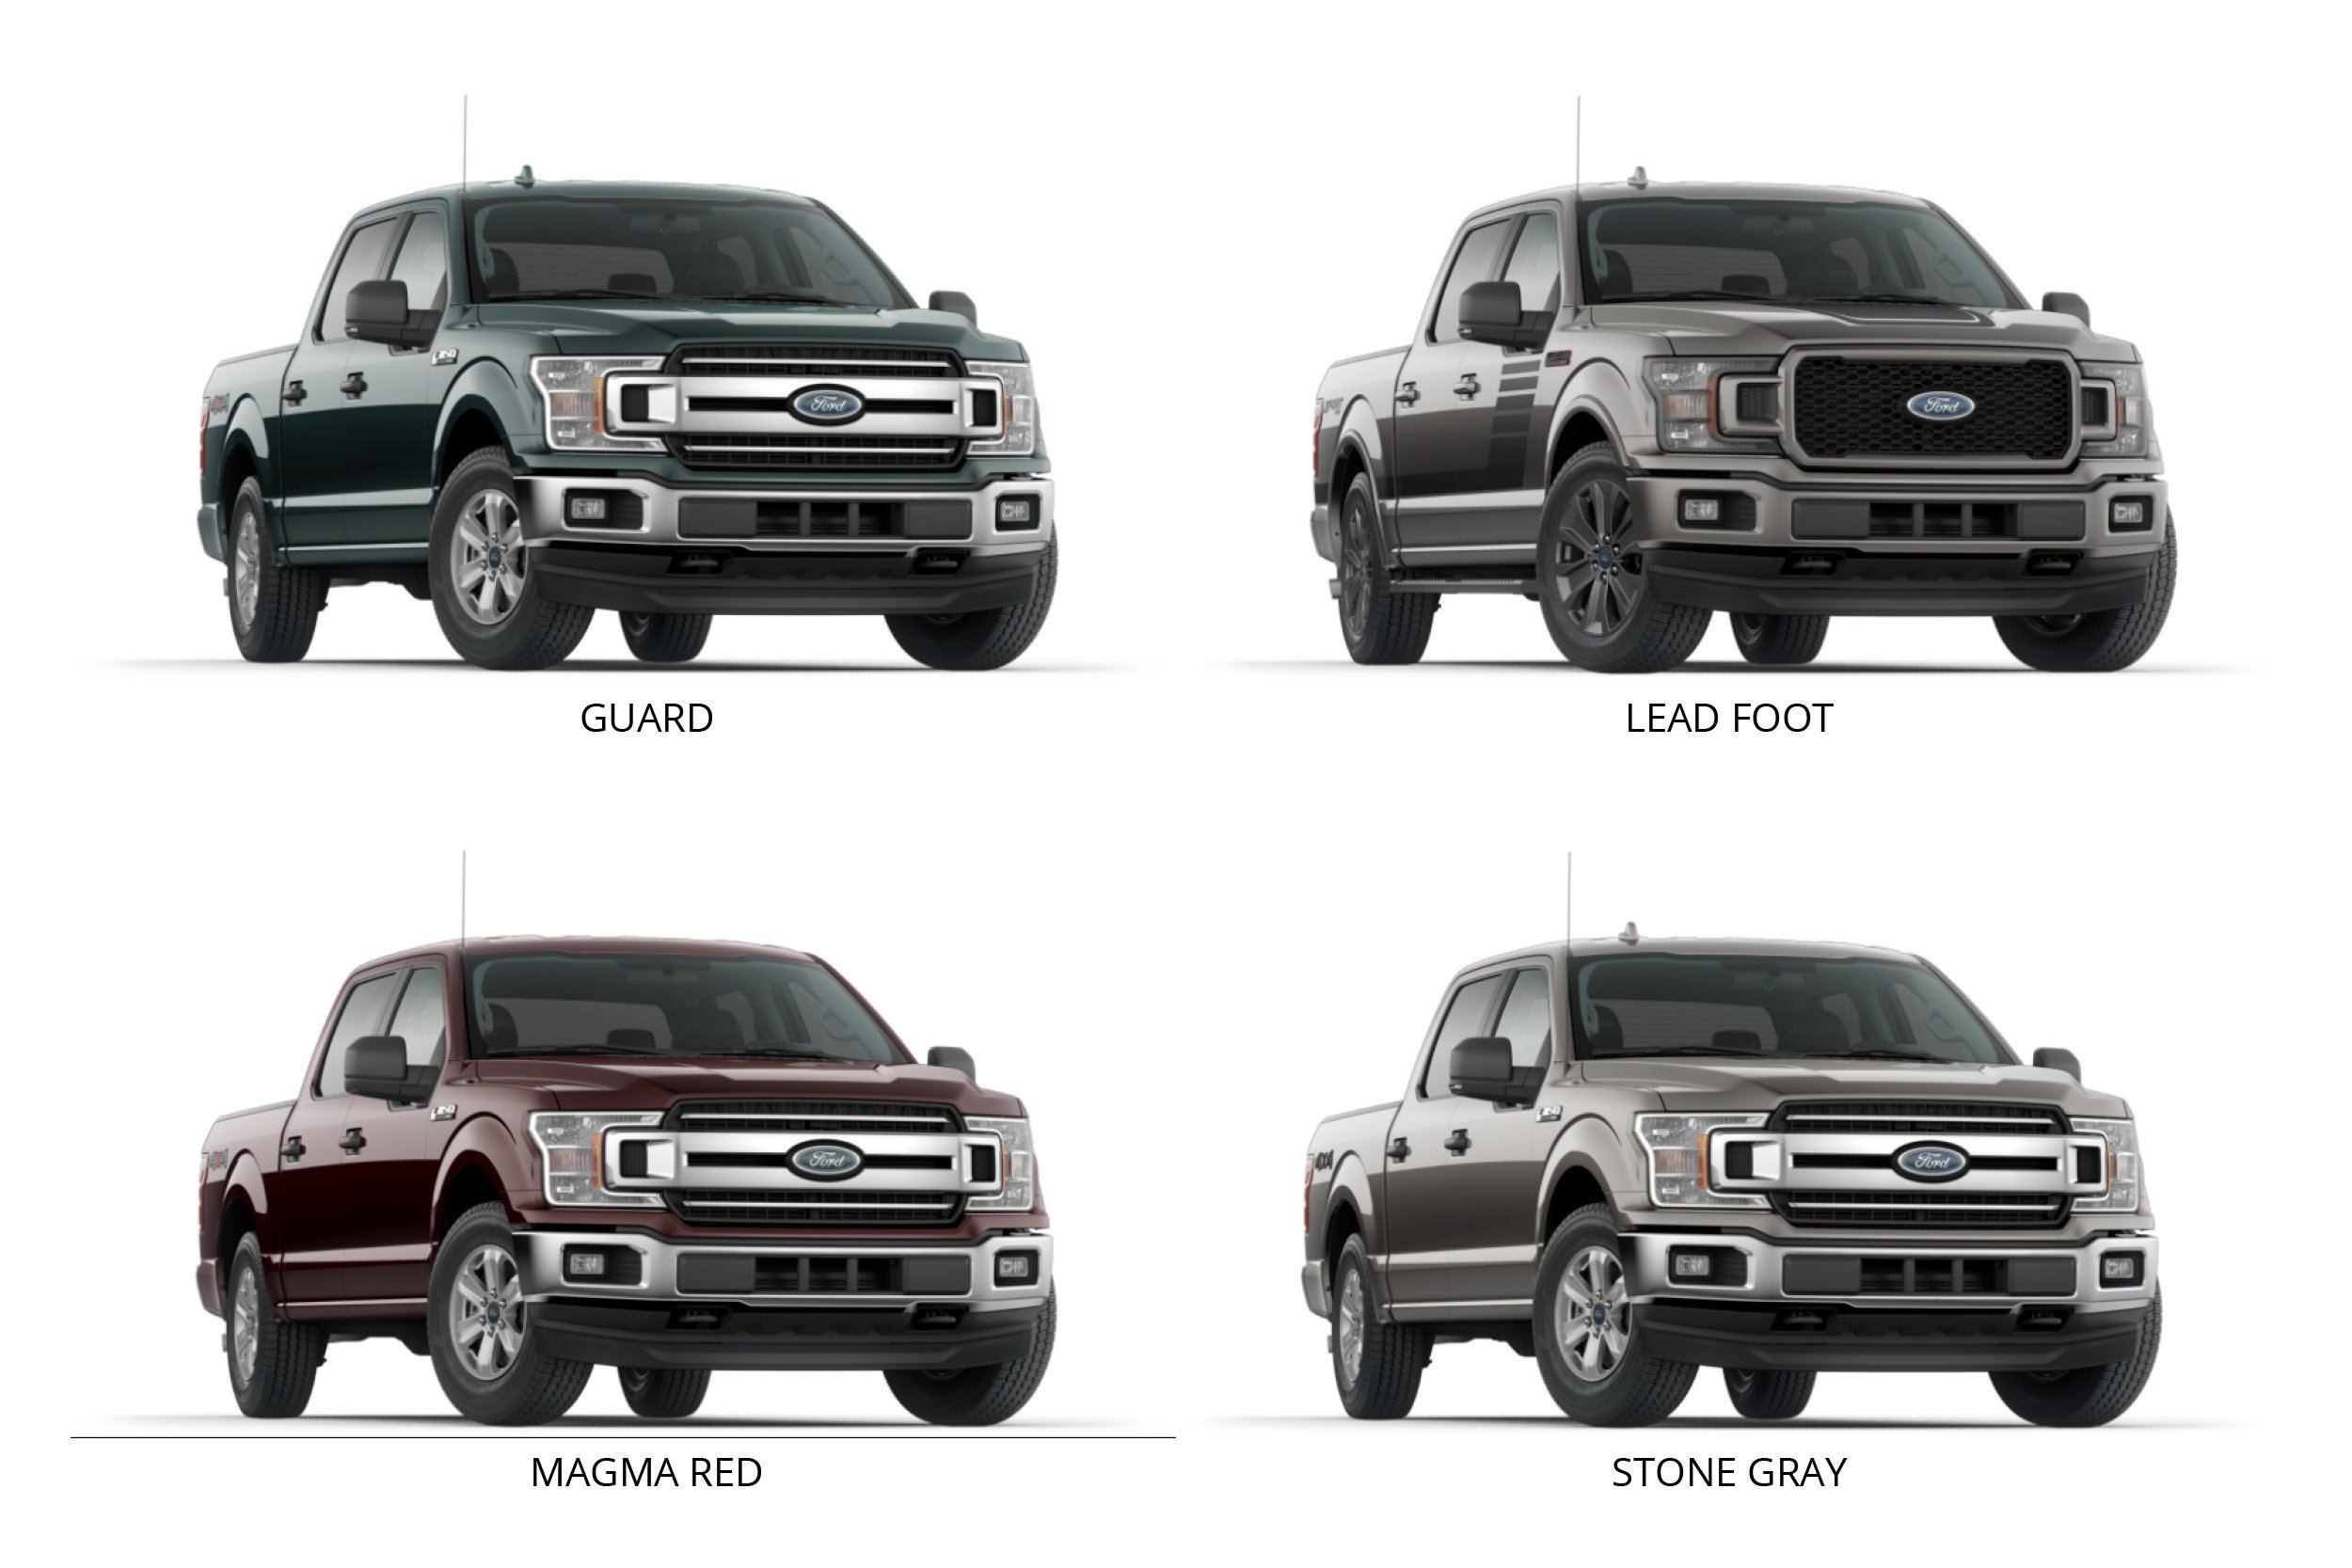 New 2018 F-150 Colors